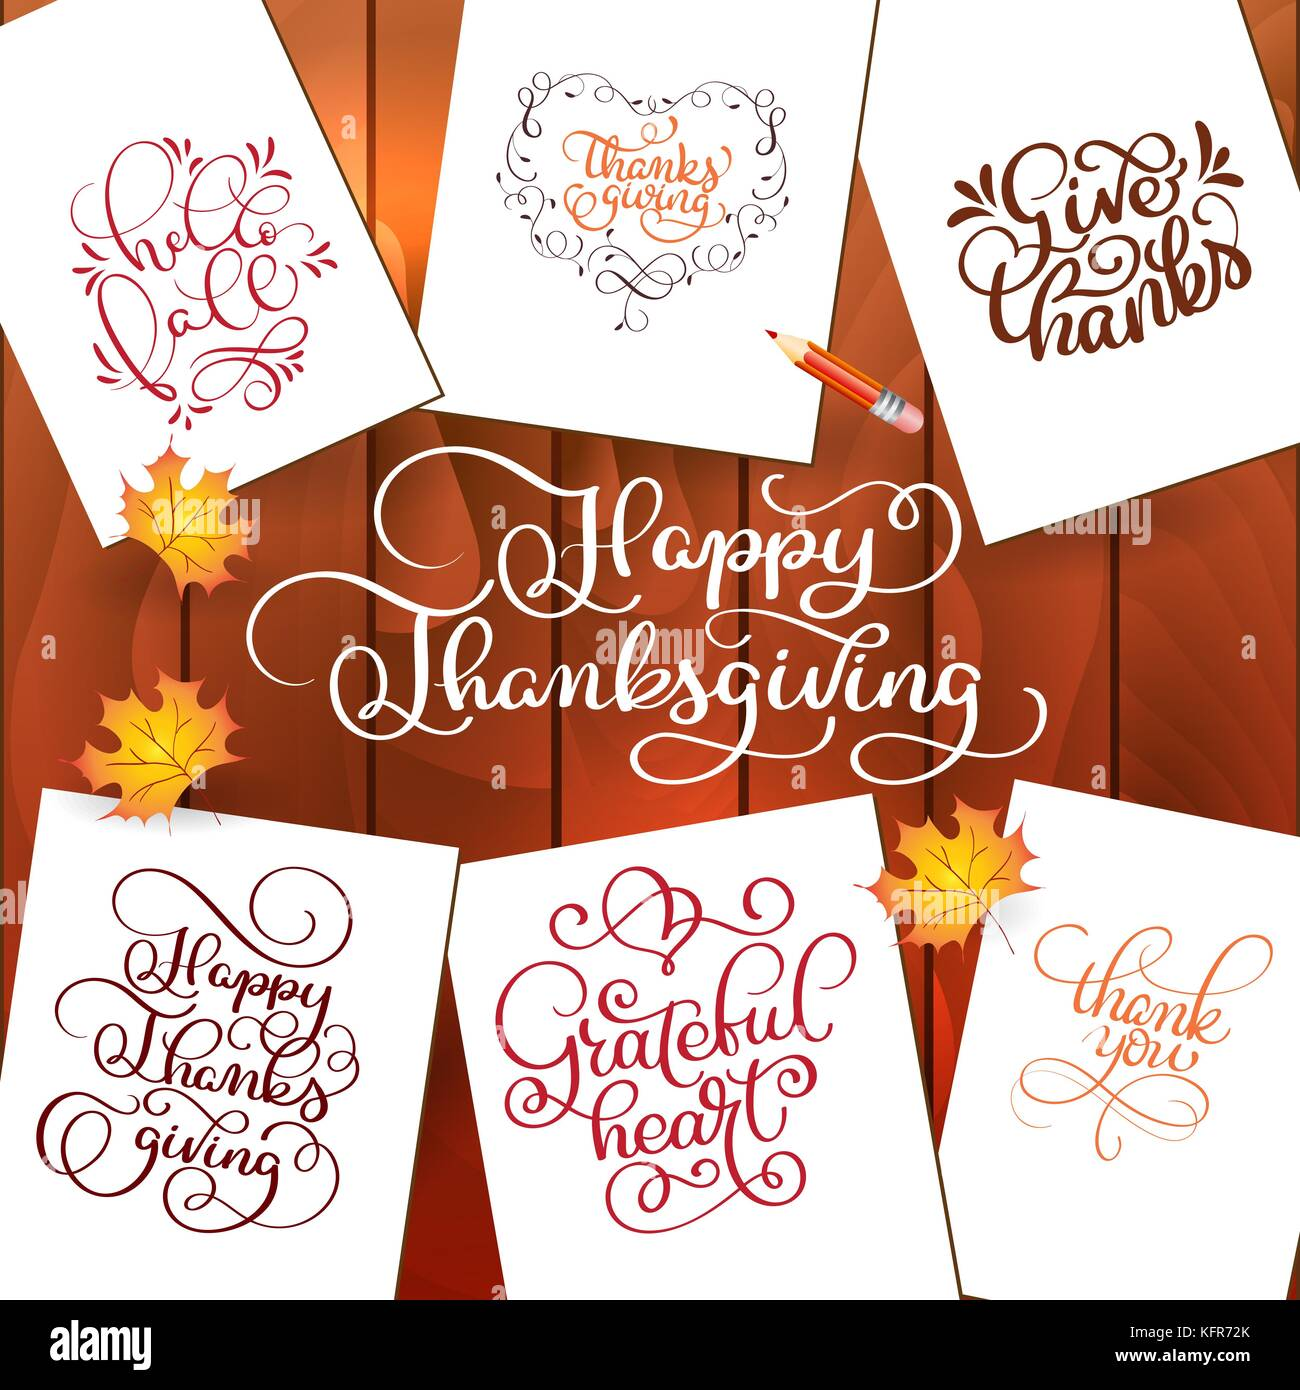 Set Of Hand Drawn Thanksgiving Day Texts Celebration Quotes Happy Thanksgiving Hello Fale Giving Thanks Grateful Heart Thank You